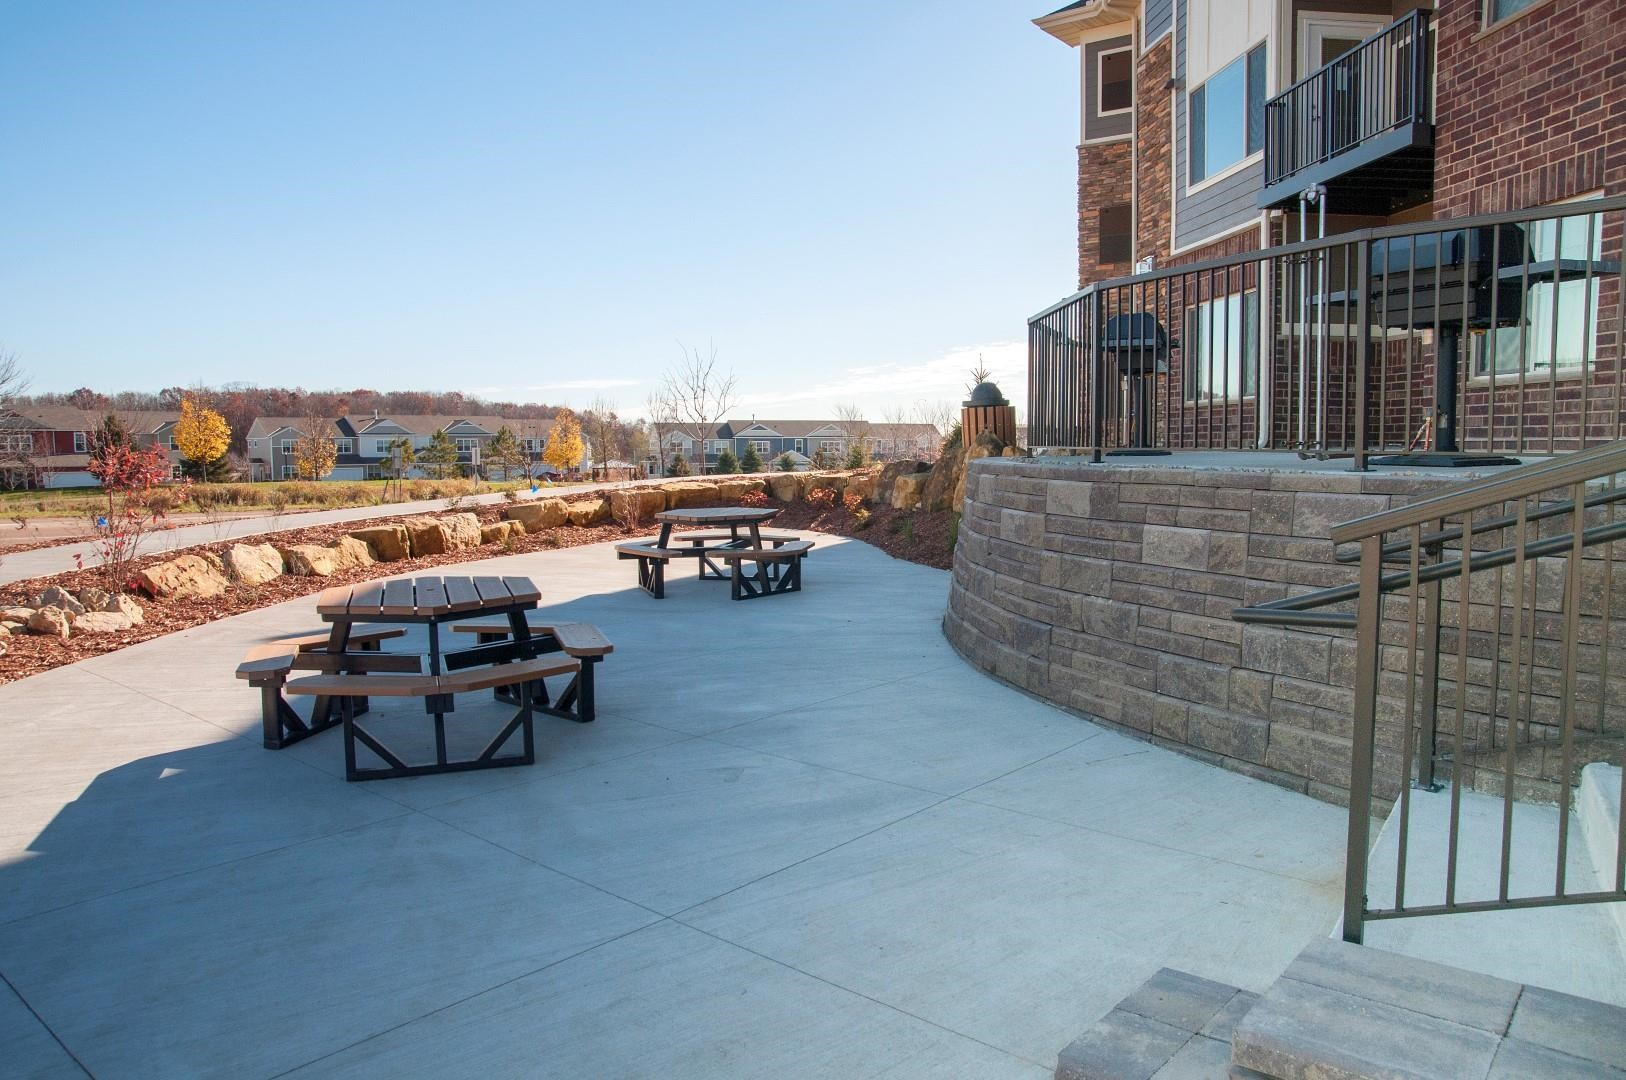 Large Concrete Patio in Back Exterior of Property in Carver, MN with Picnic Tables and Grilling Stations